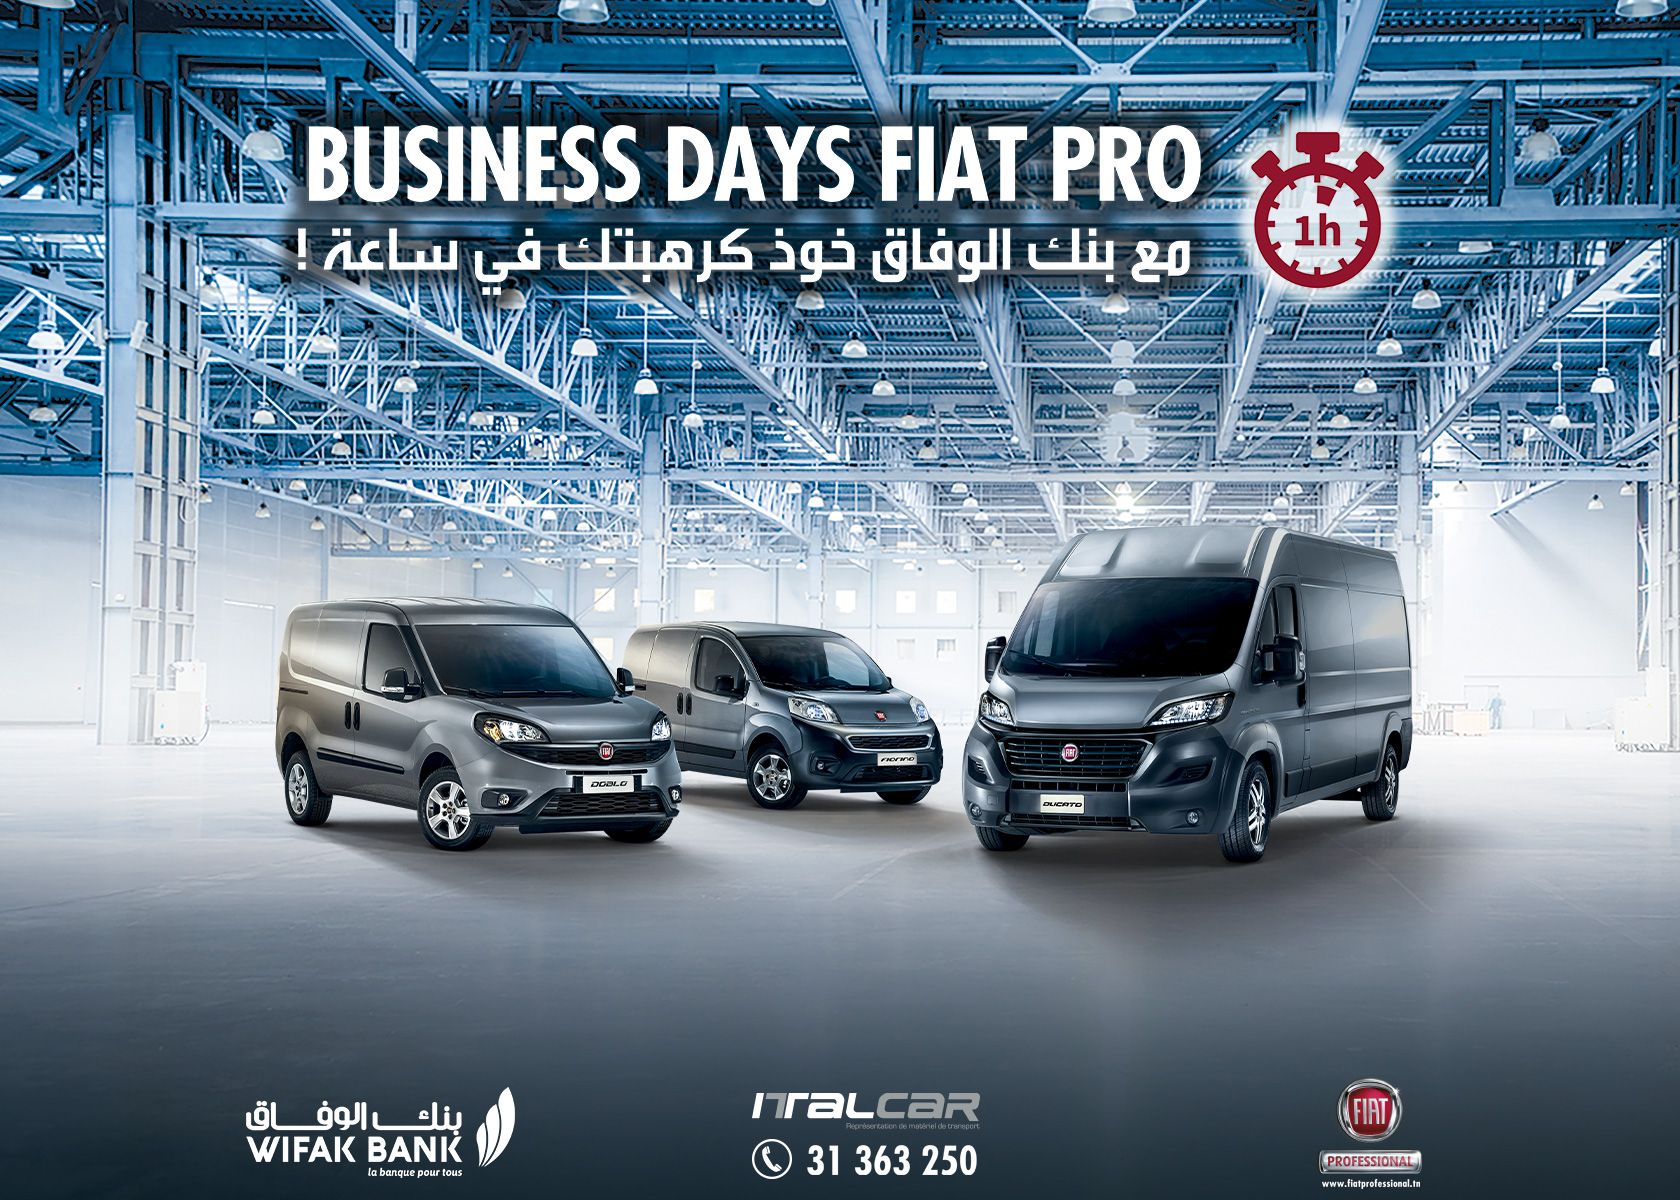 Business Days Fiat Pro